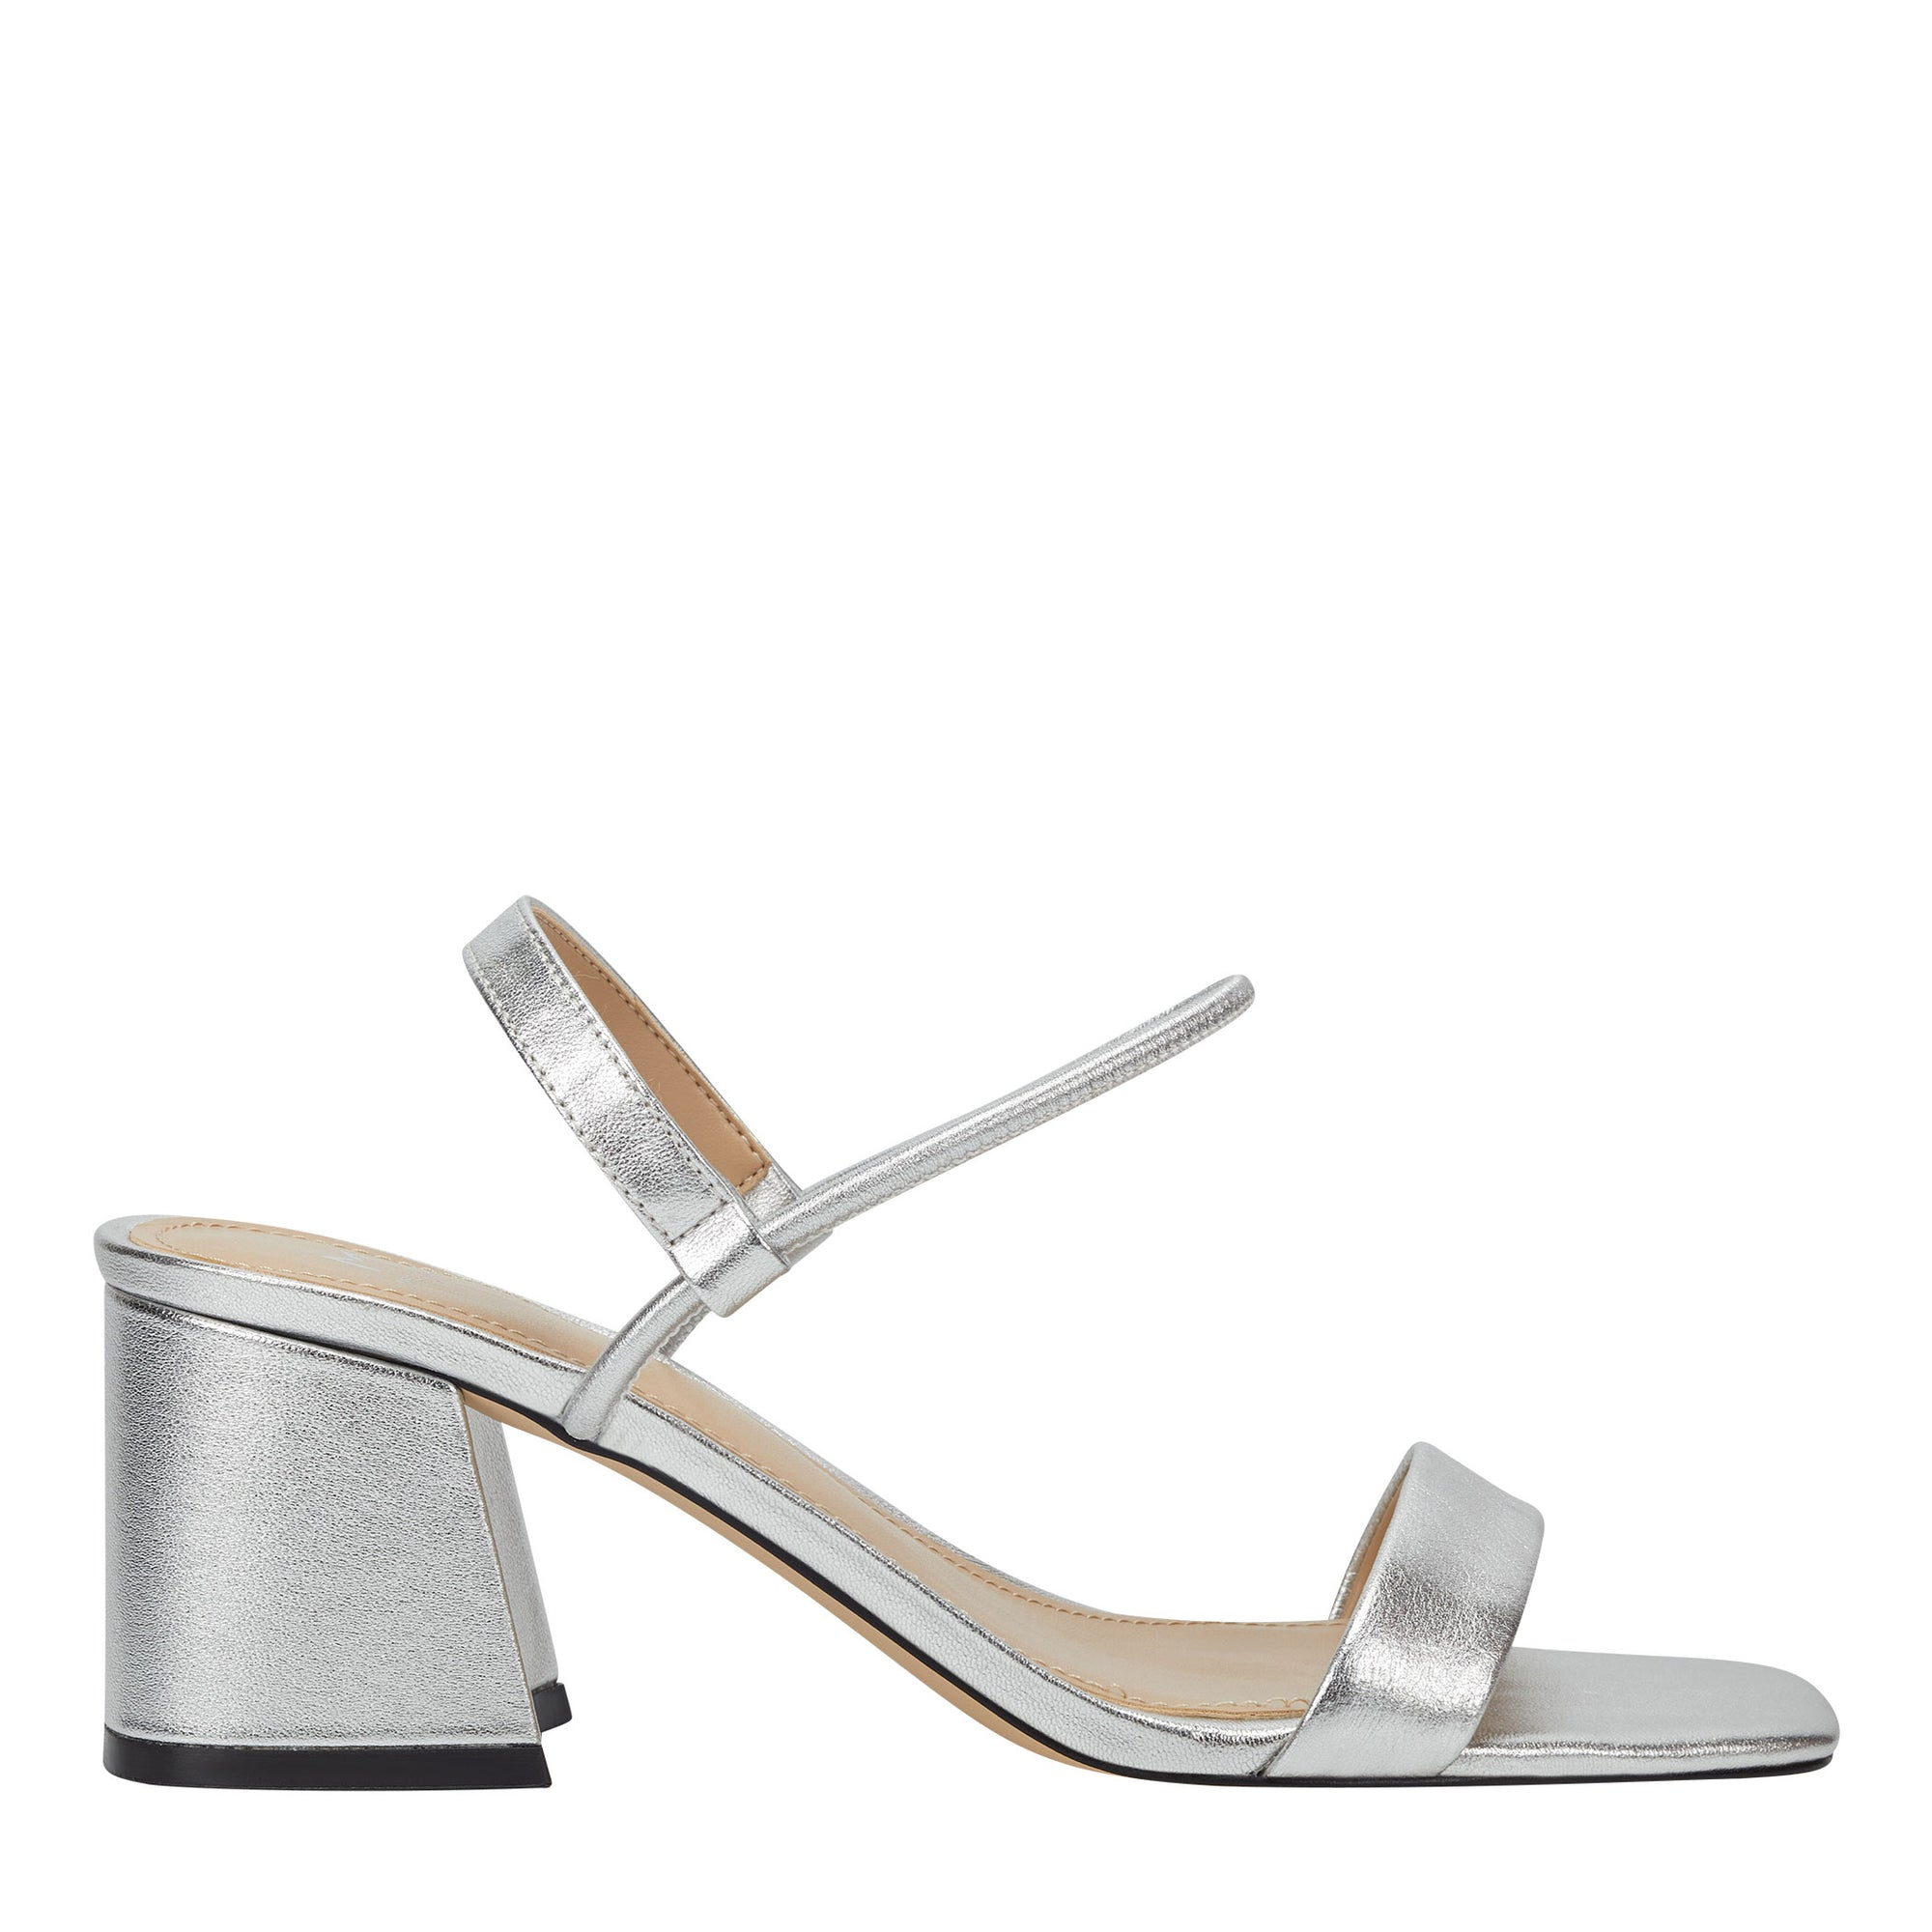 nabela-block-heel-sandal-in-silver-leather